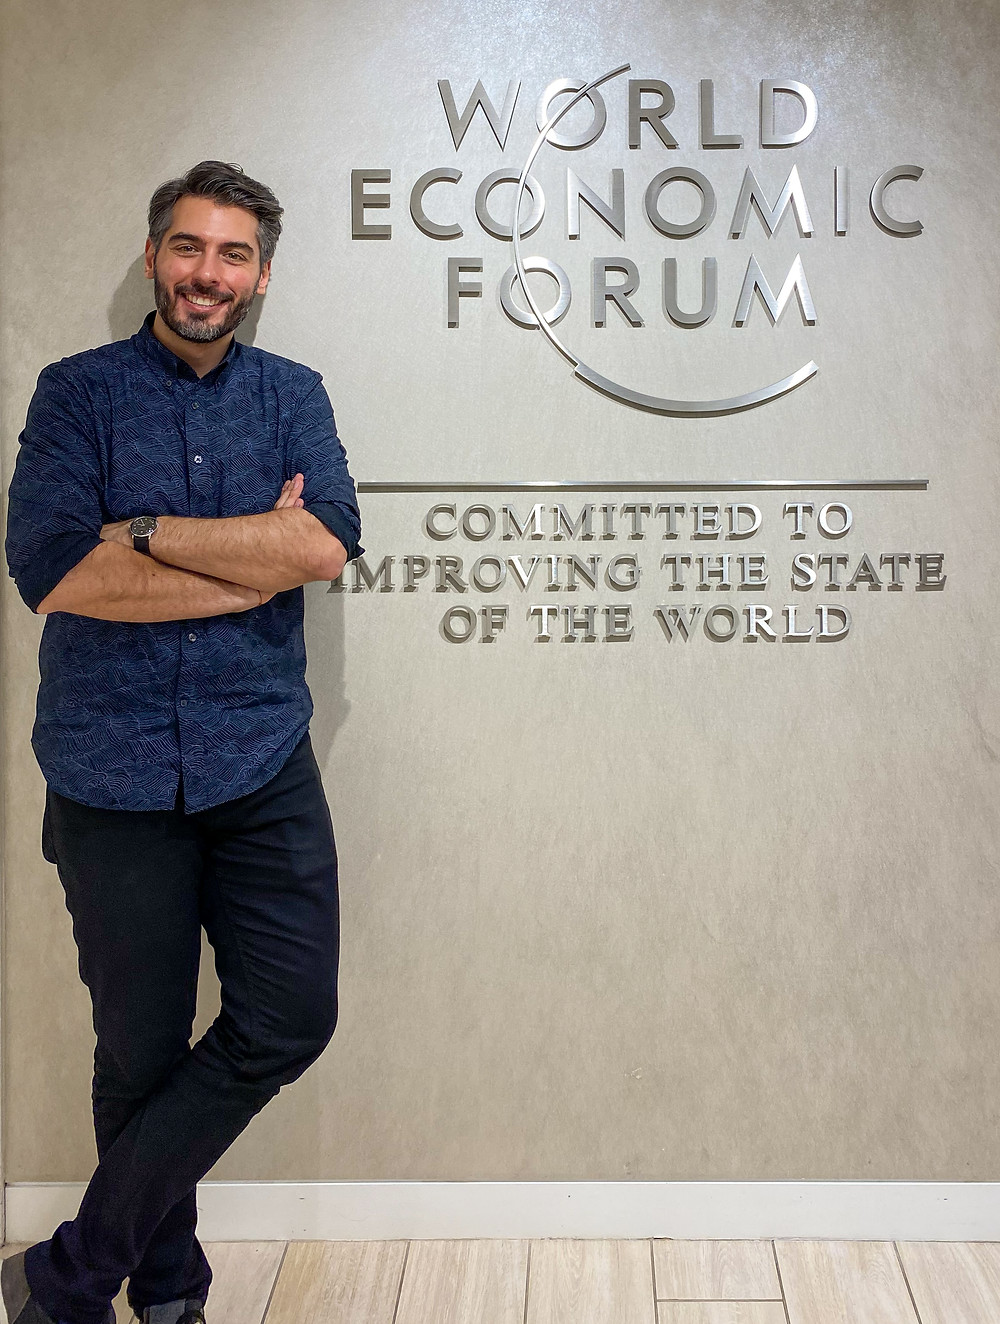 Giancarlo Pitocco speaking at World Economic Forum